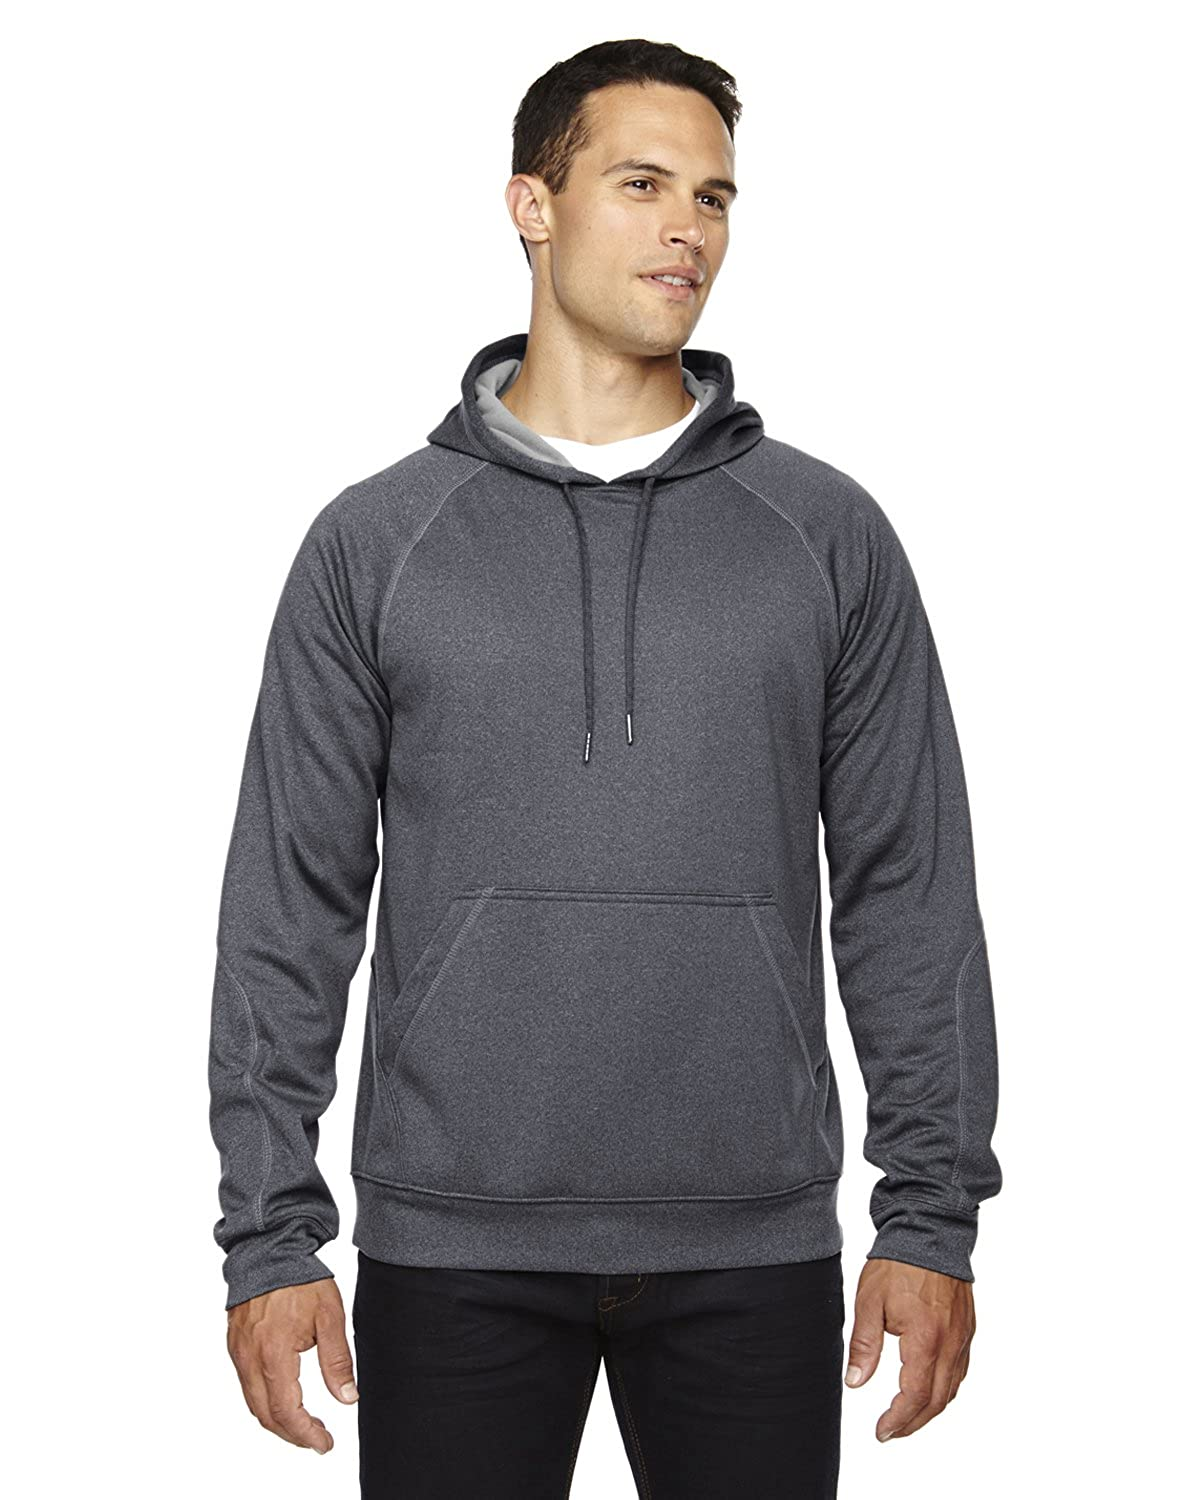 Ash City North End 88164 - PIVOT ADULT PERFORMANCE FLEECE HOODIE Ash City - North End